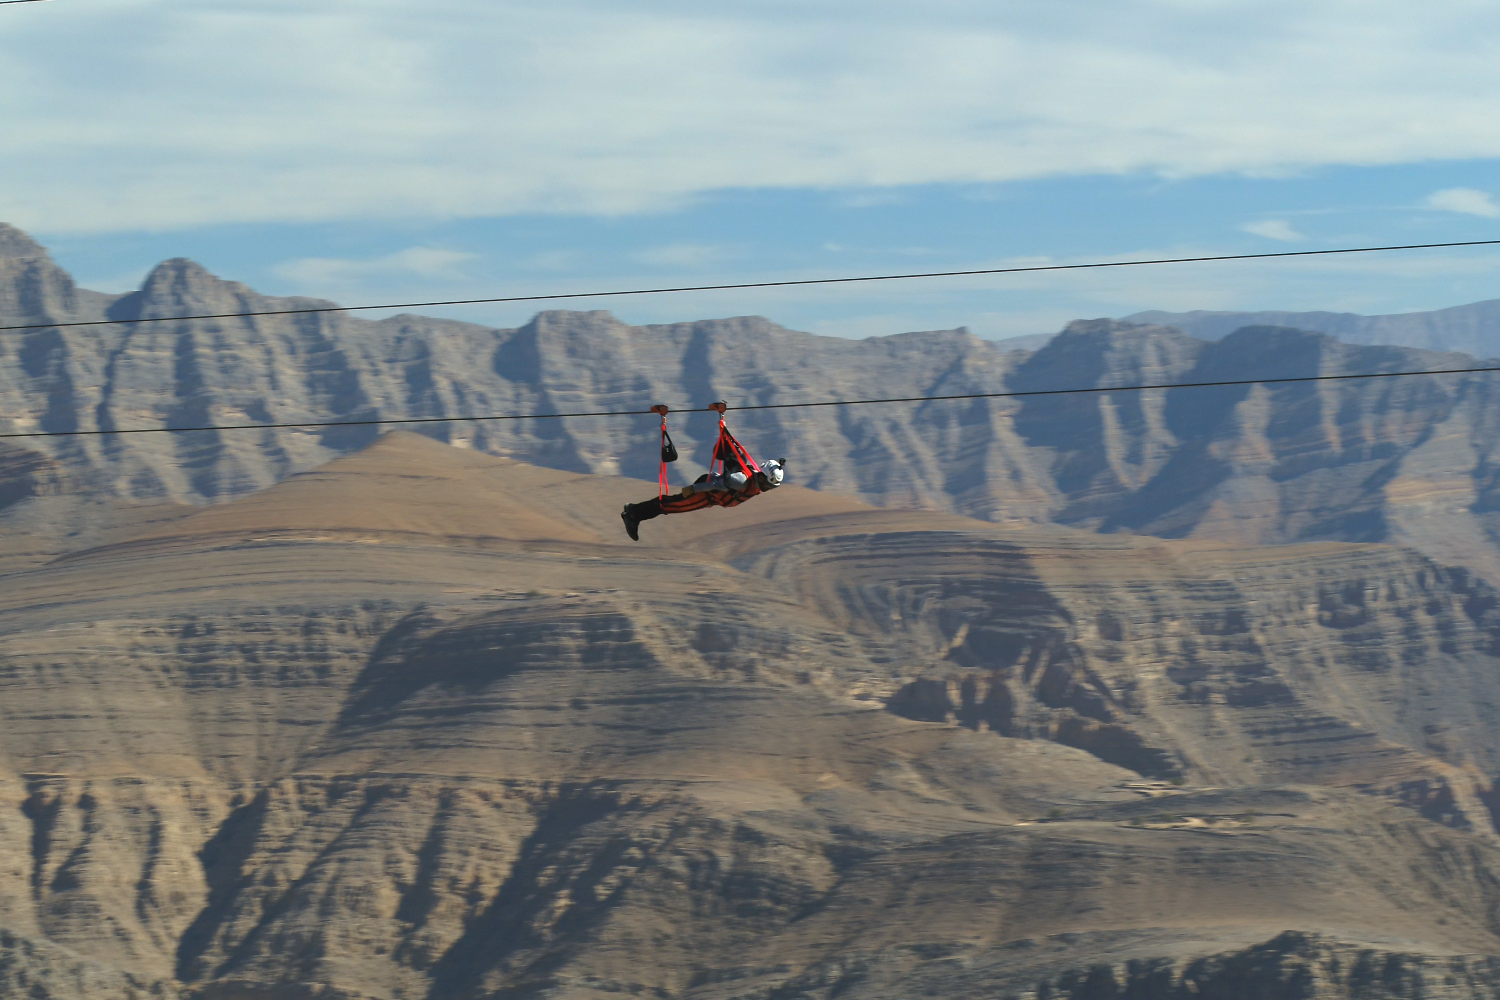 Would you ride on the world's longest zipline now open in the UAE